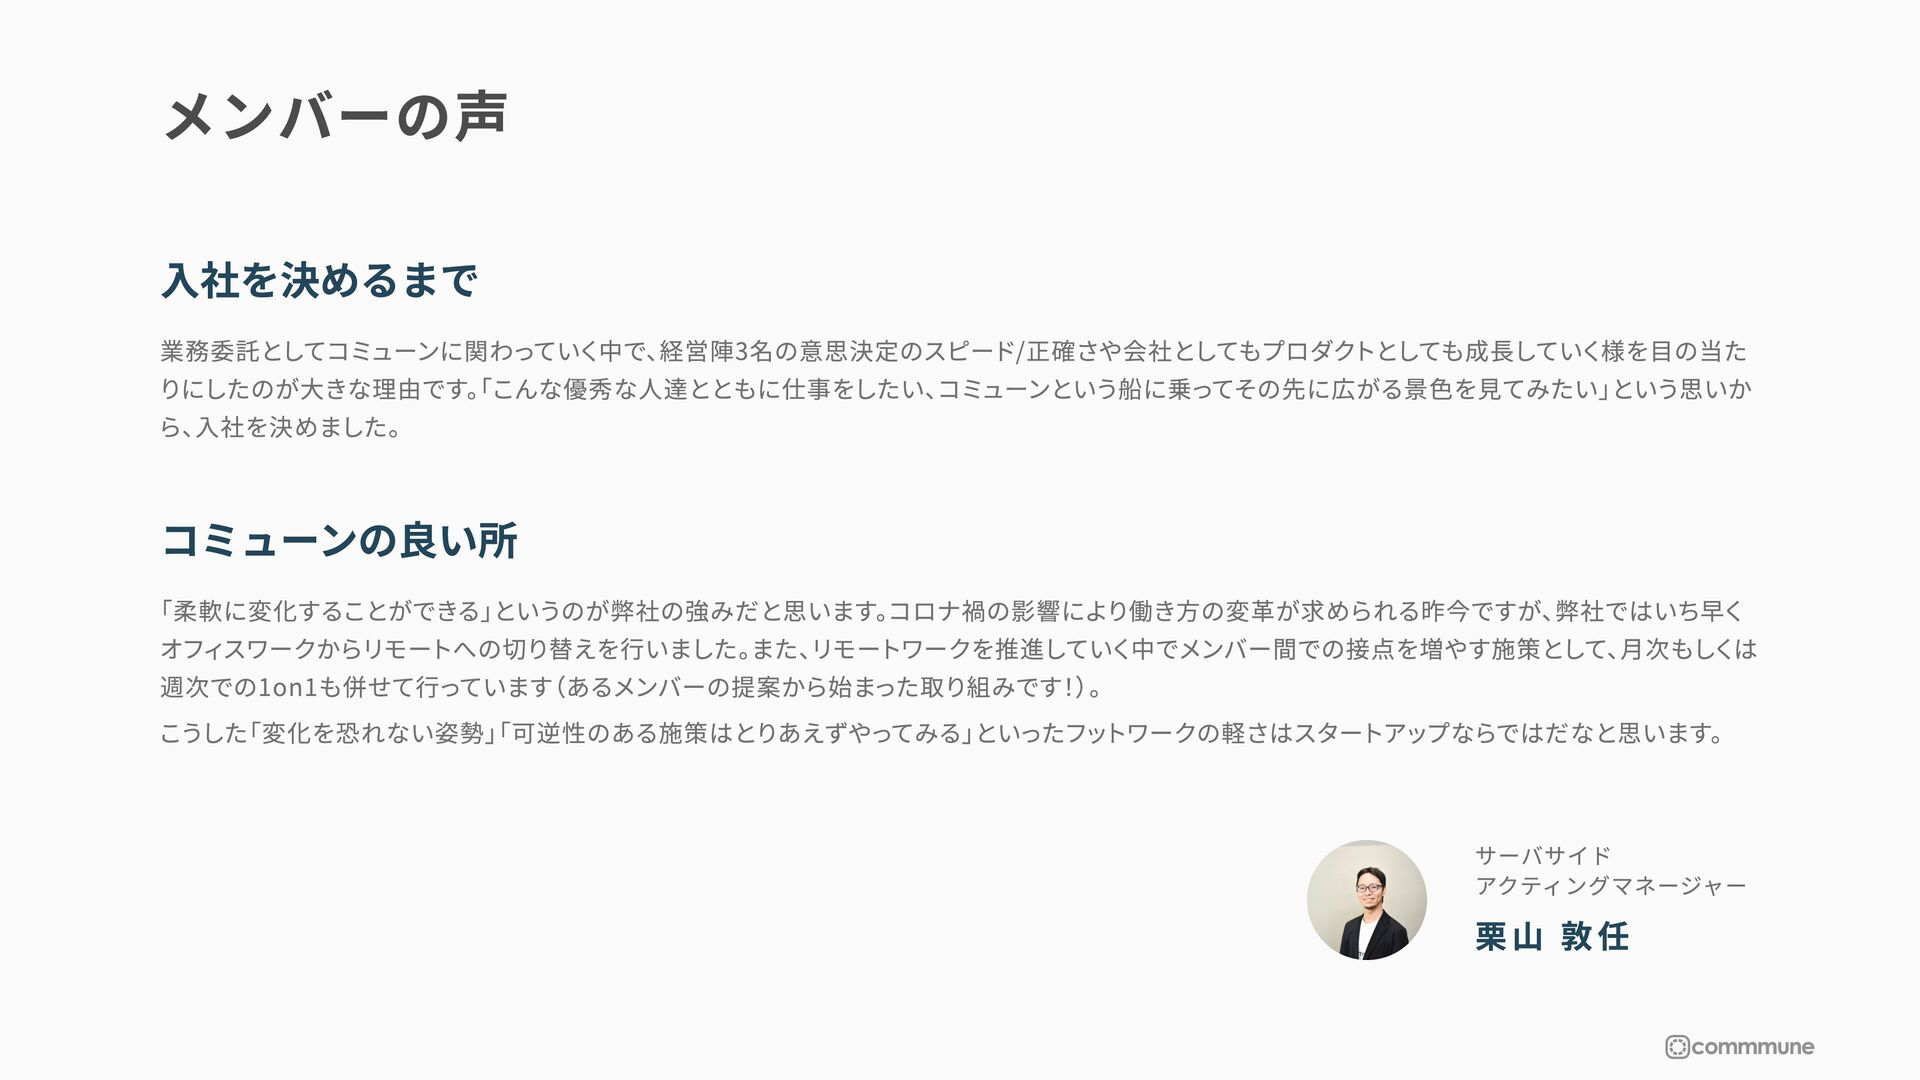 ©commmune Inc. All rights reserved 平均値を⼤きく上回り、メ...